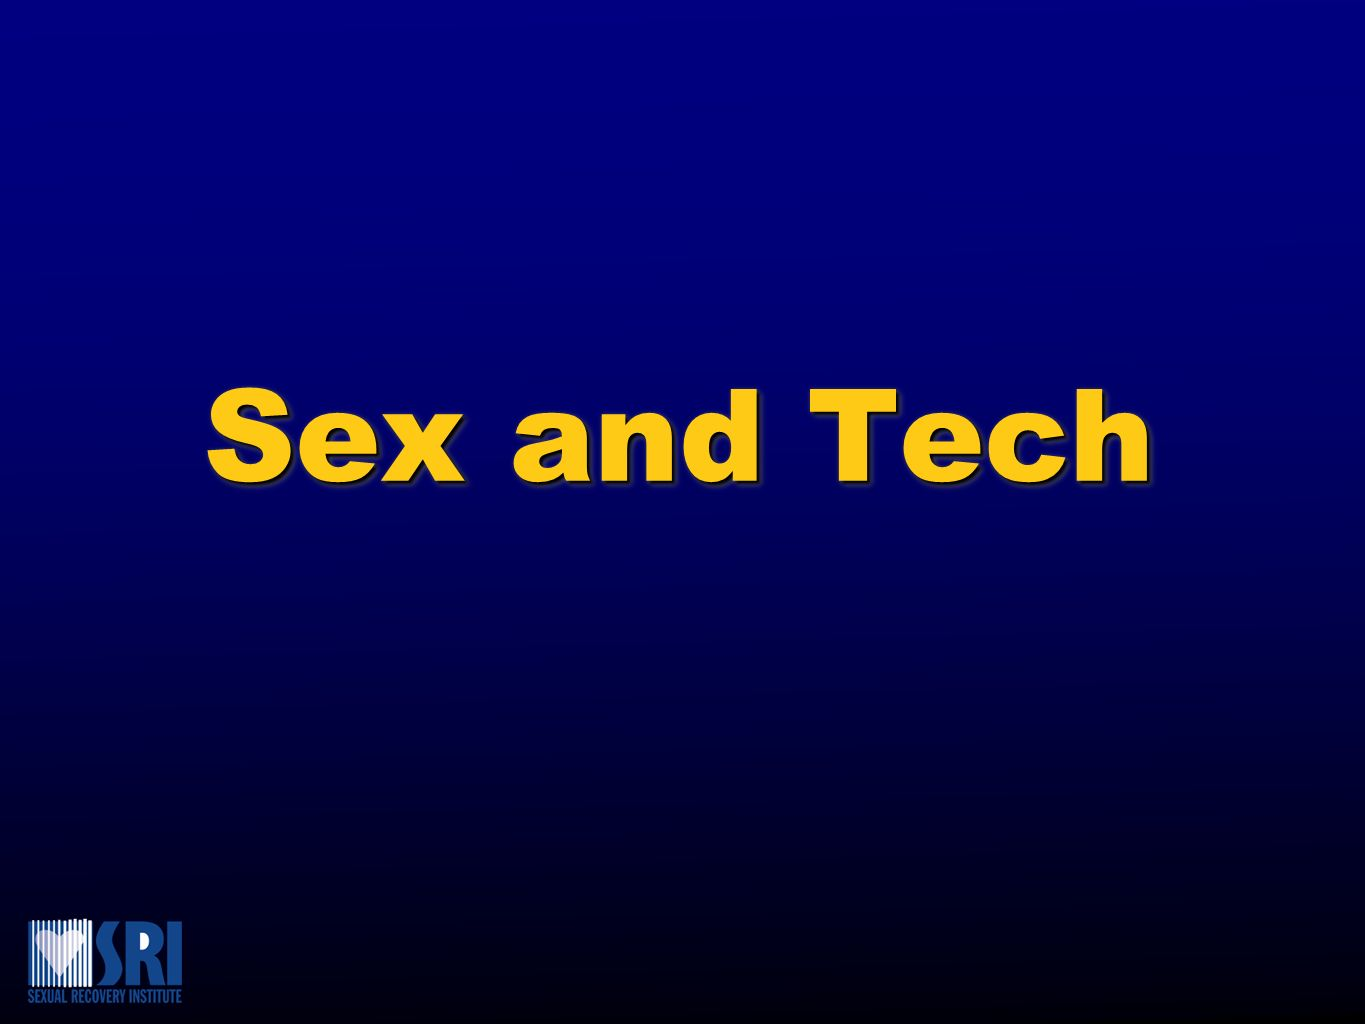 Sex and Tech